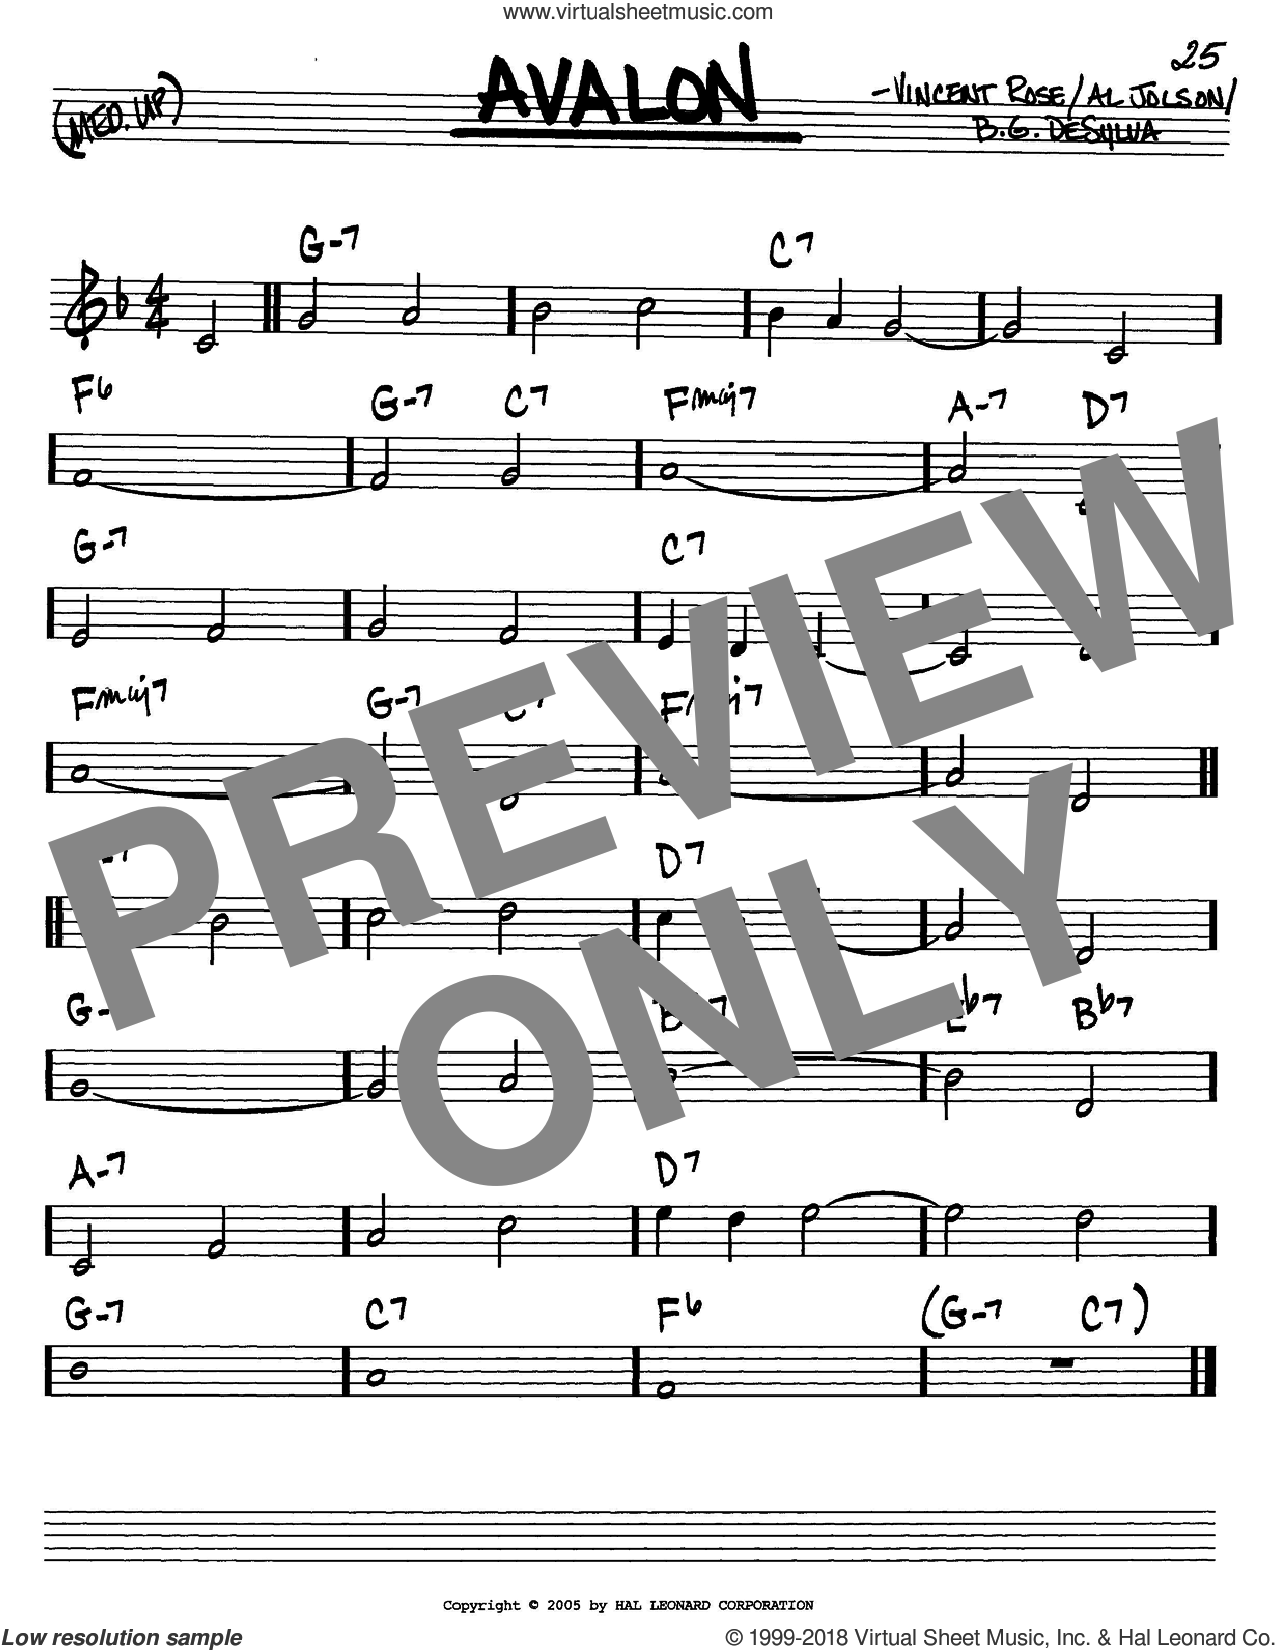 Avalon sheet music for voice and other instruments (in C) by Al Jolson, Buddy DeSylva and Vincent Rose, intermediate skill level